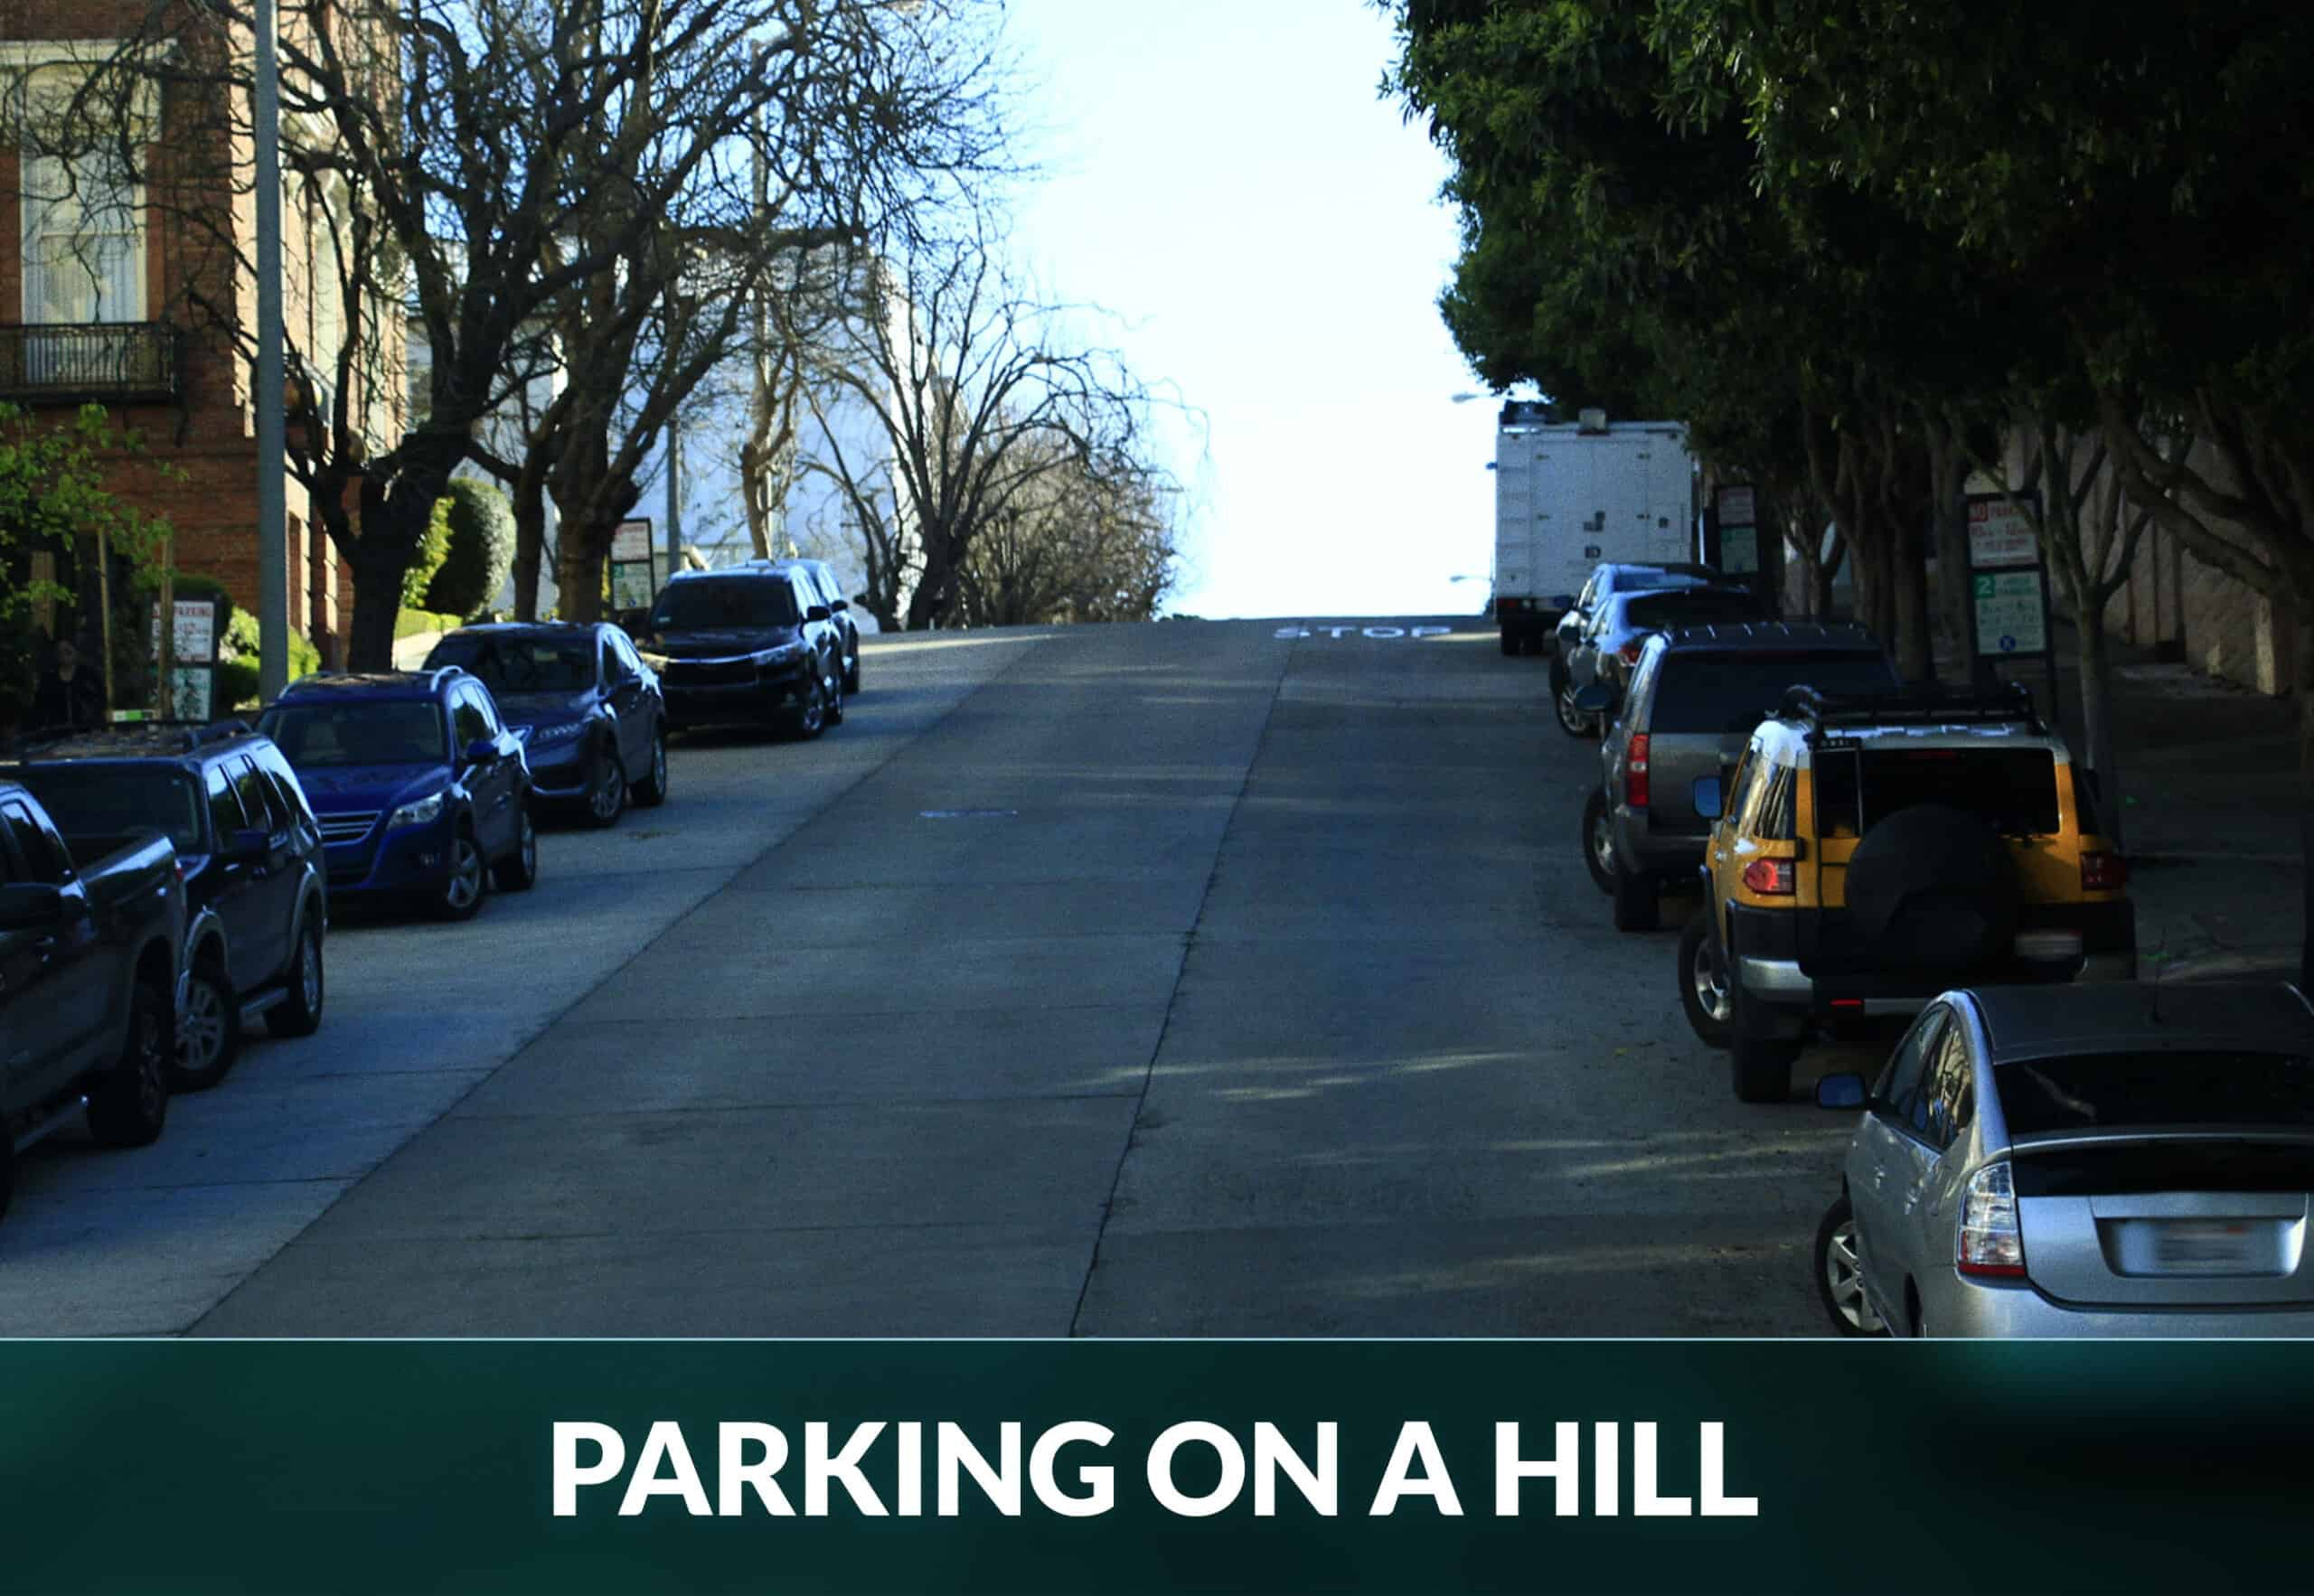 PARKING ON A HILL. UPHILL AND DOWNHILL